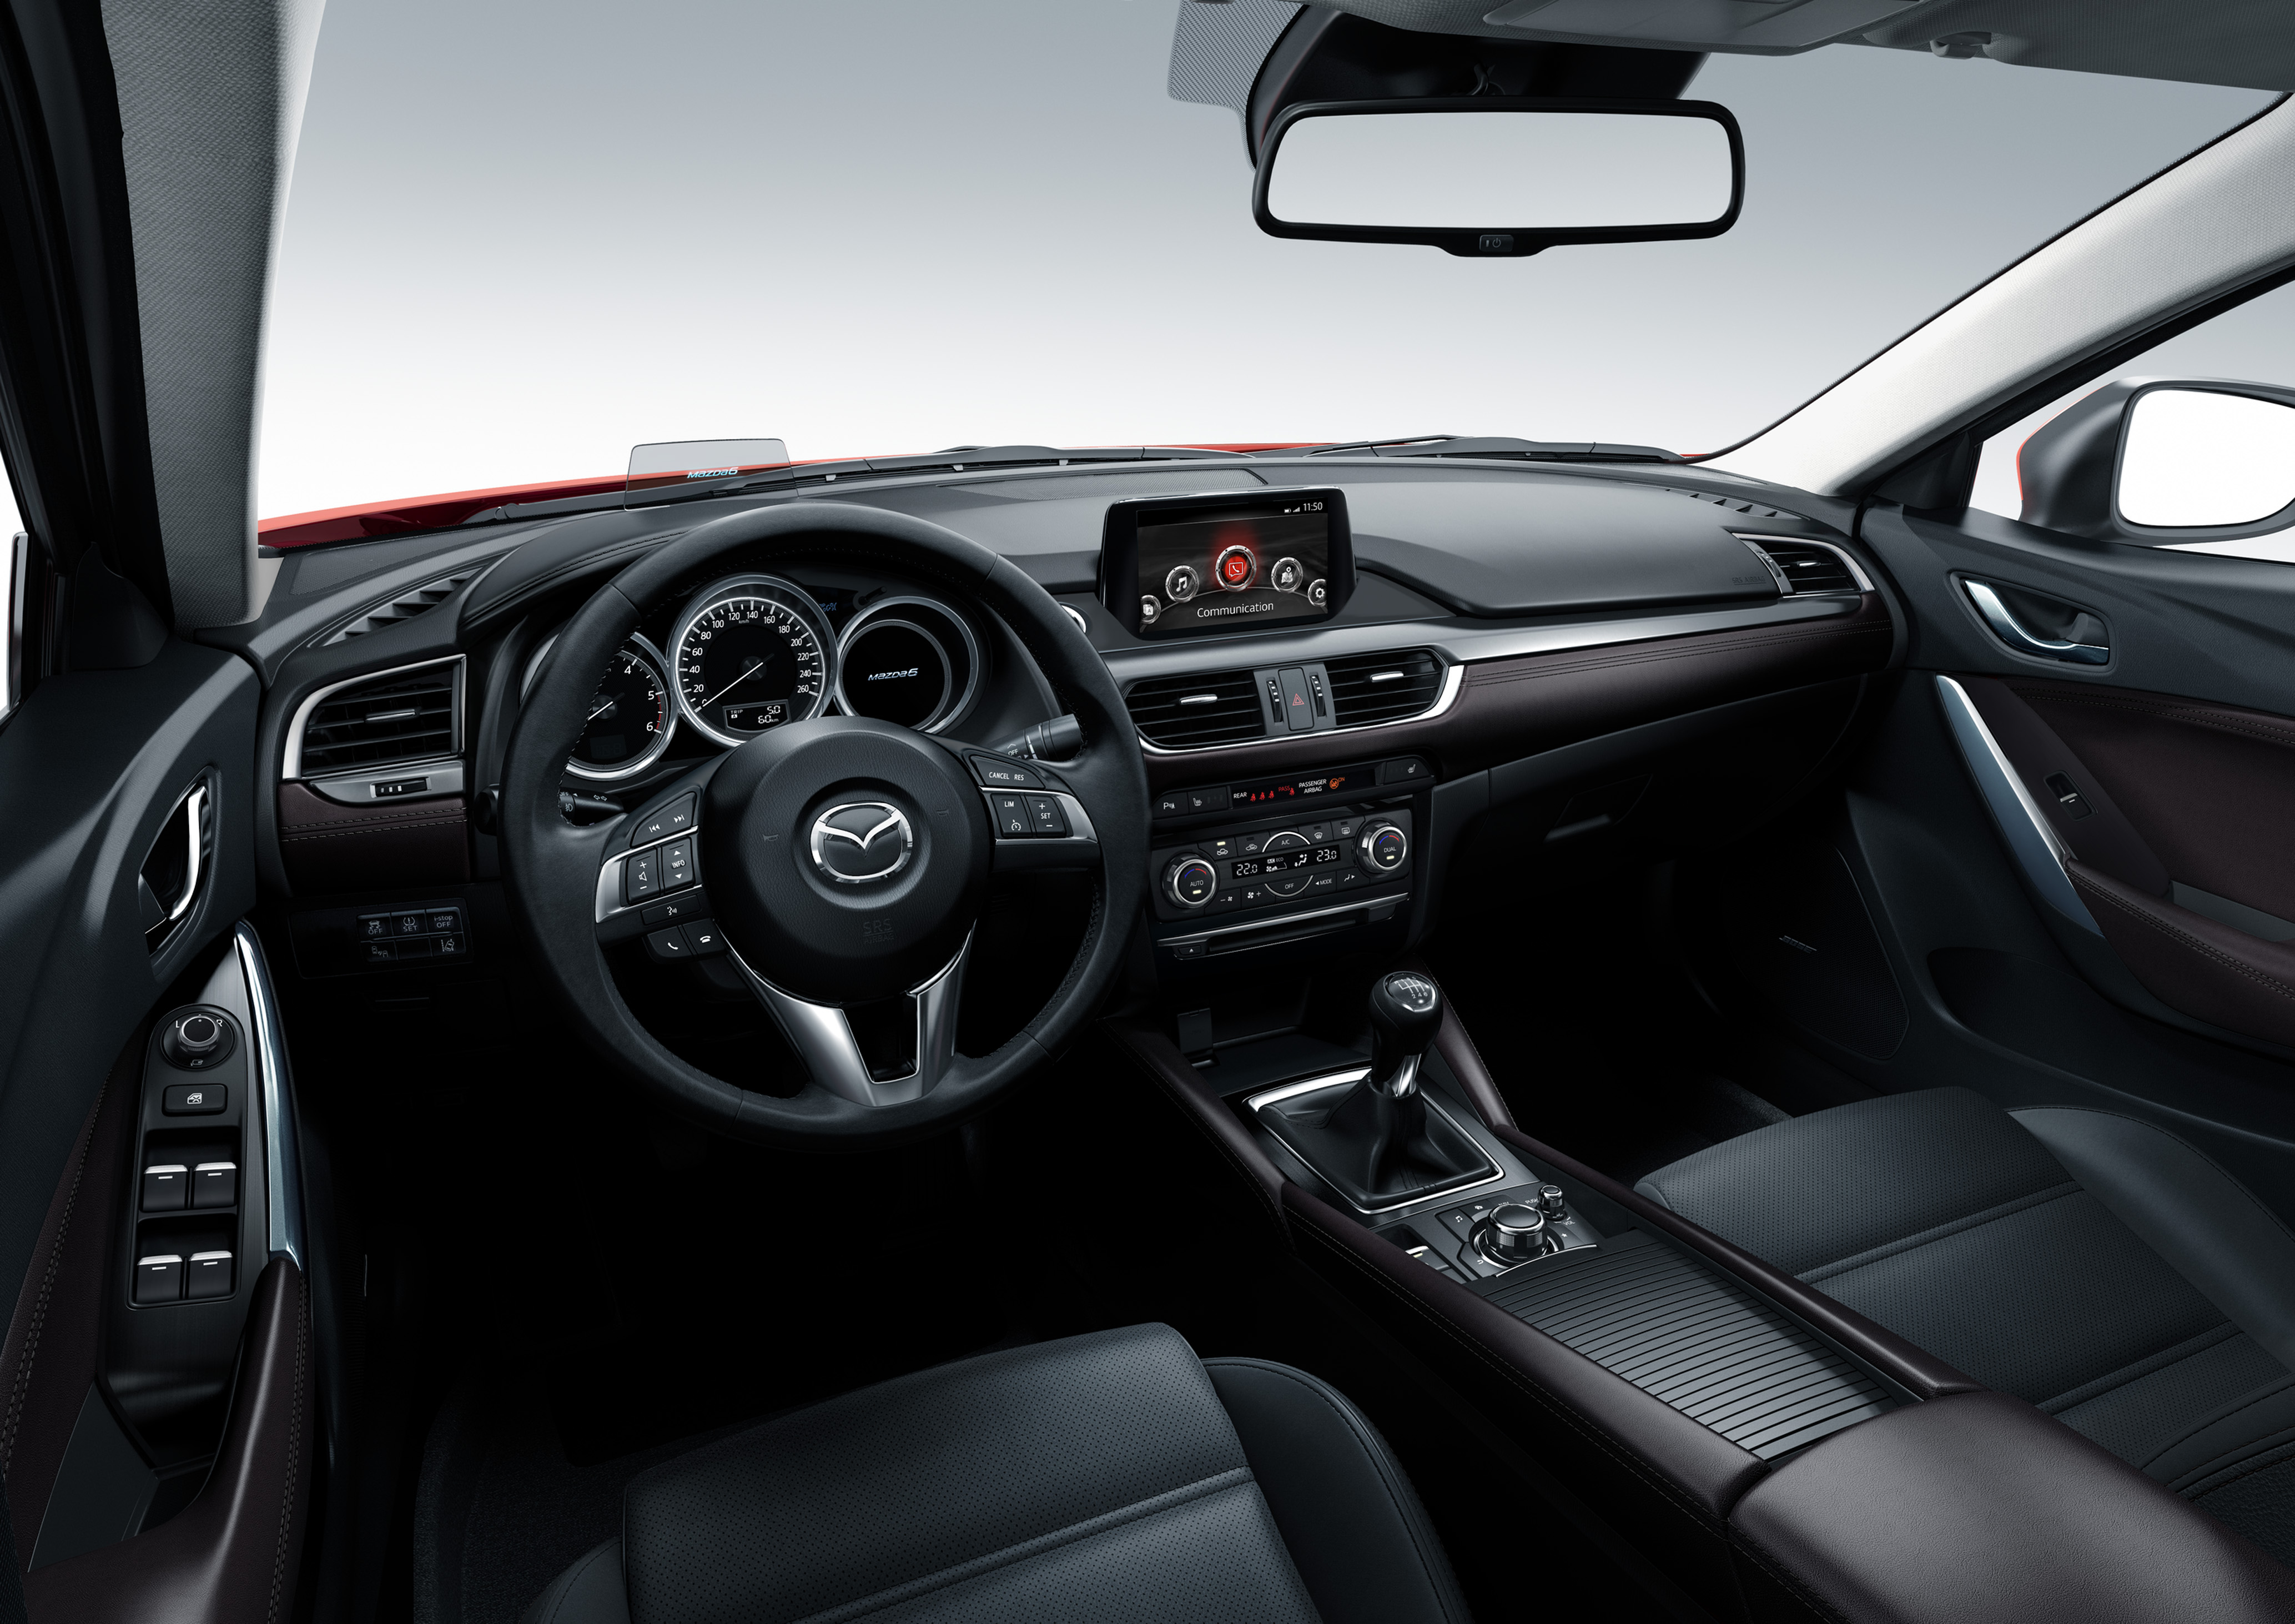 Mazda 6 Facelift Unveiled At The 2014 La Motor Show Image 289567